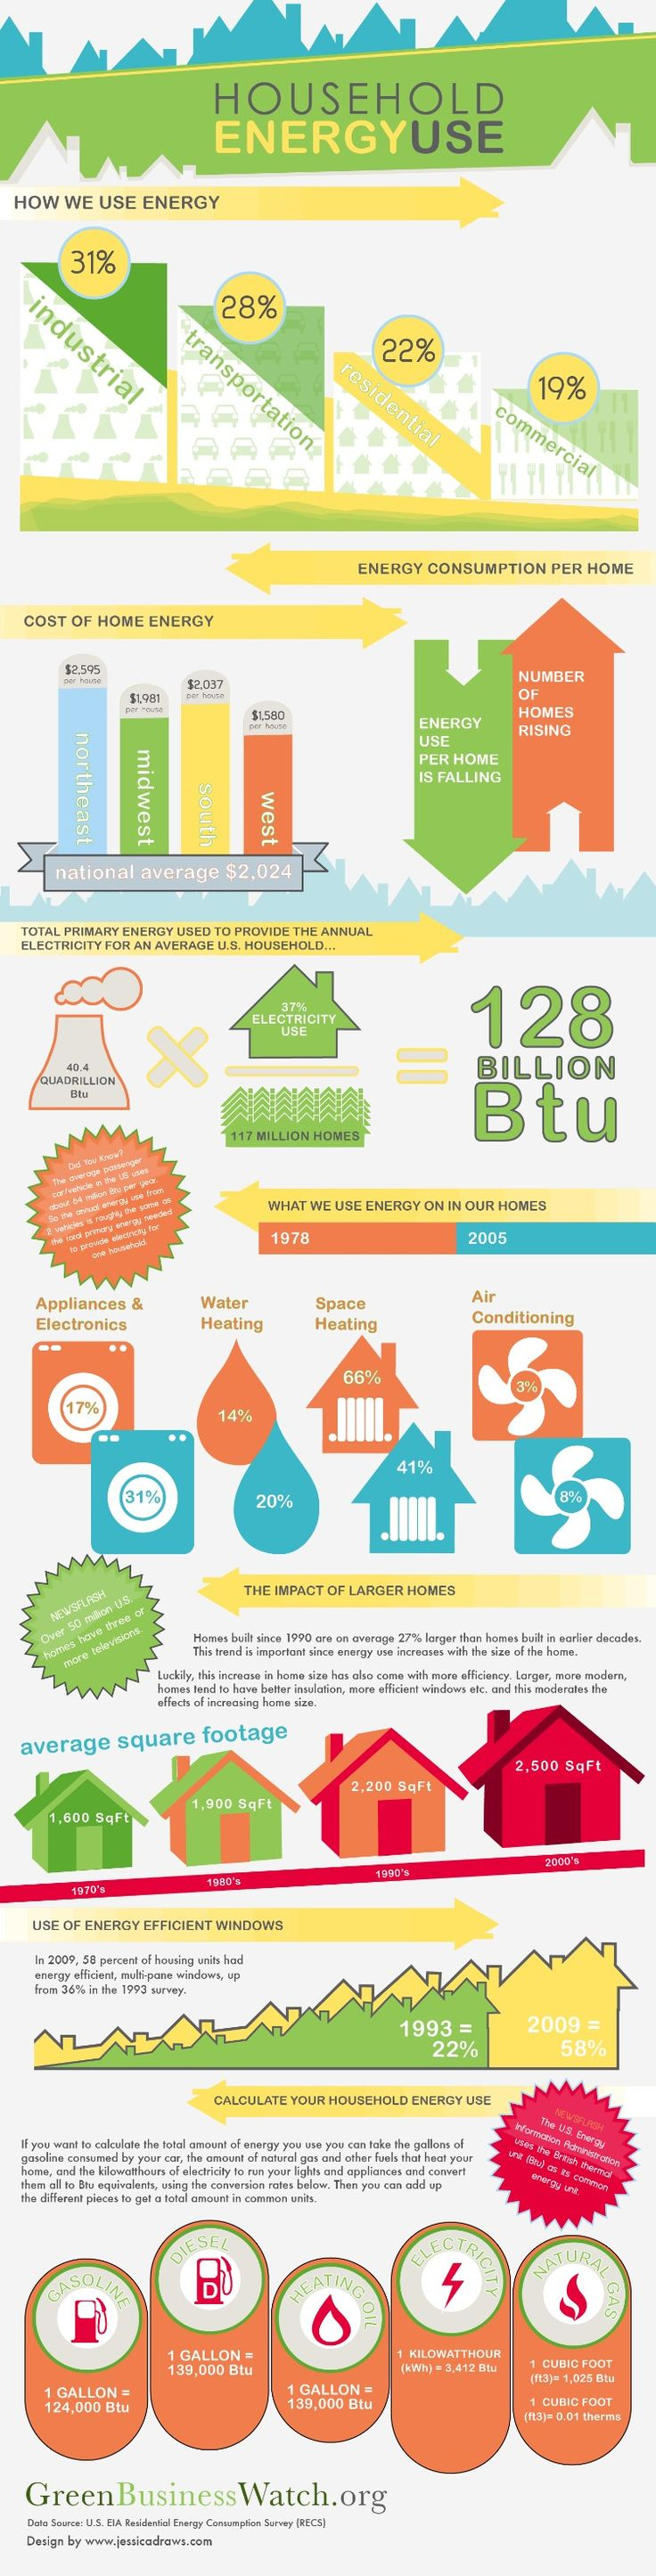 Household Energy Use. Understanding our household energy use can help us save money and consider what areas we need to look at if we want to reduce consumption and cut energy costs.